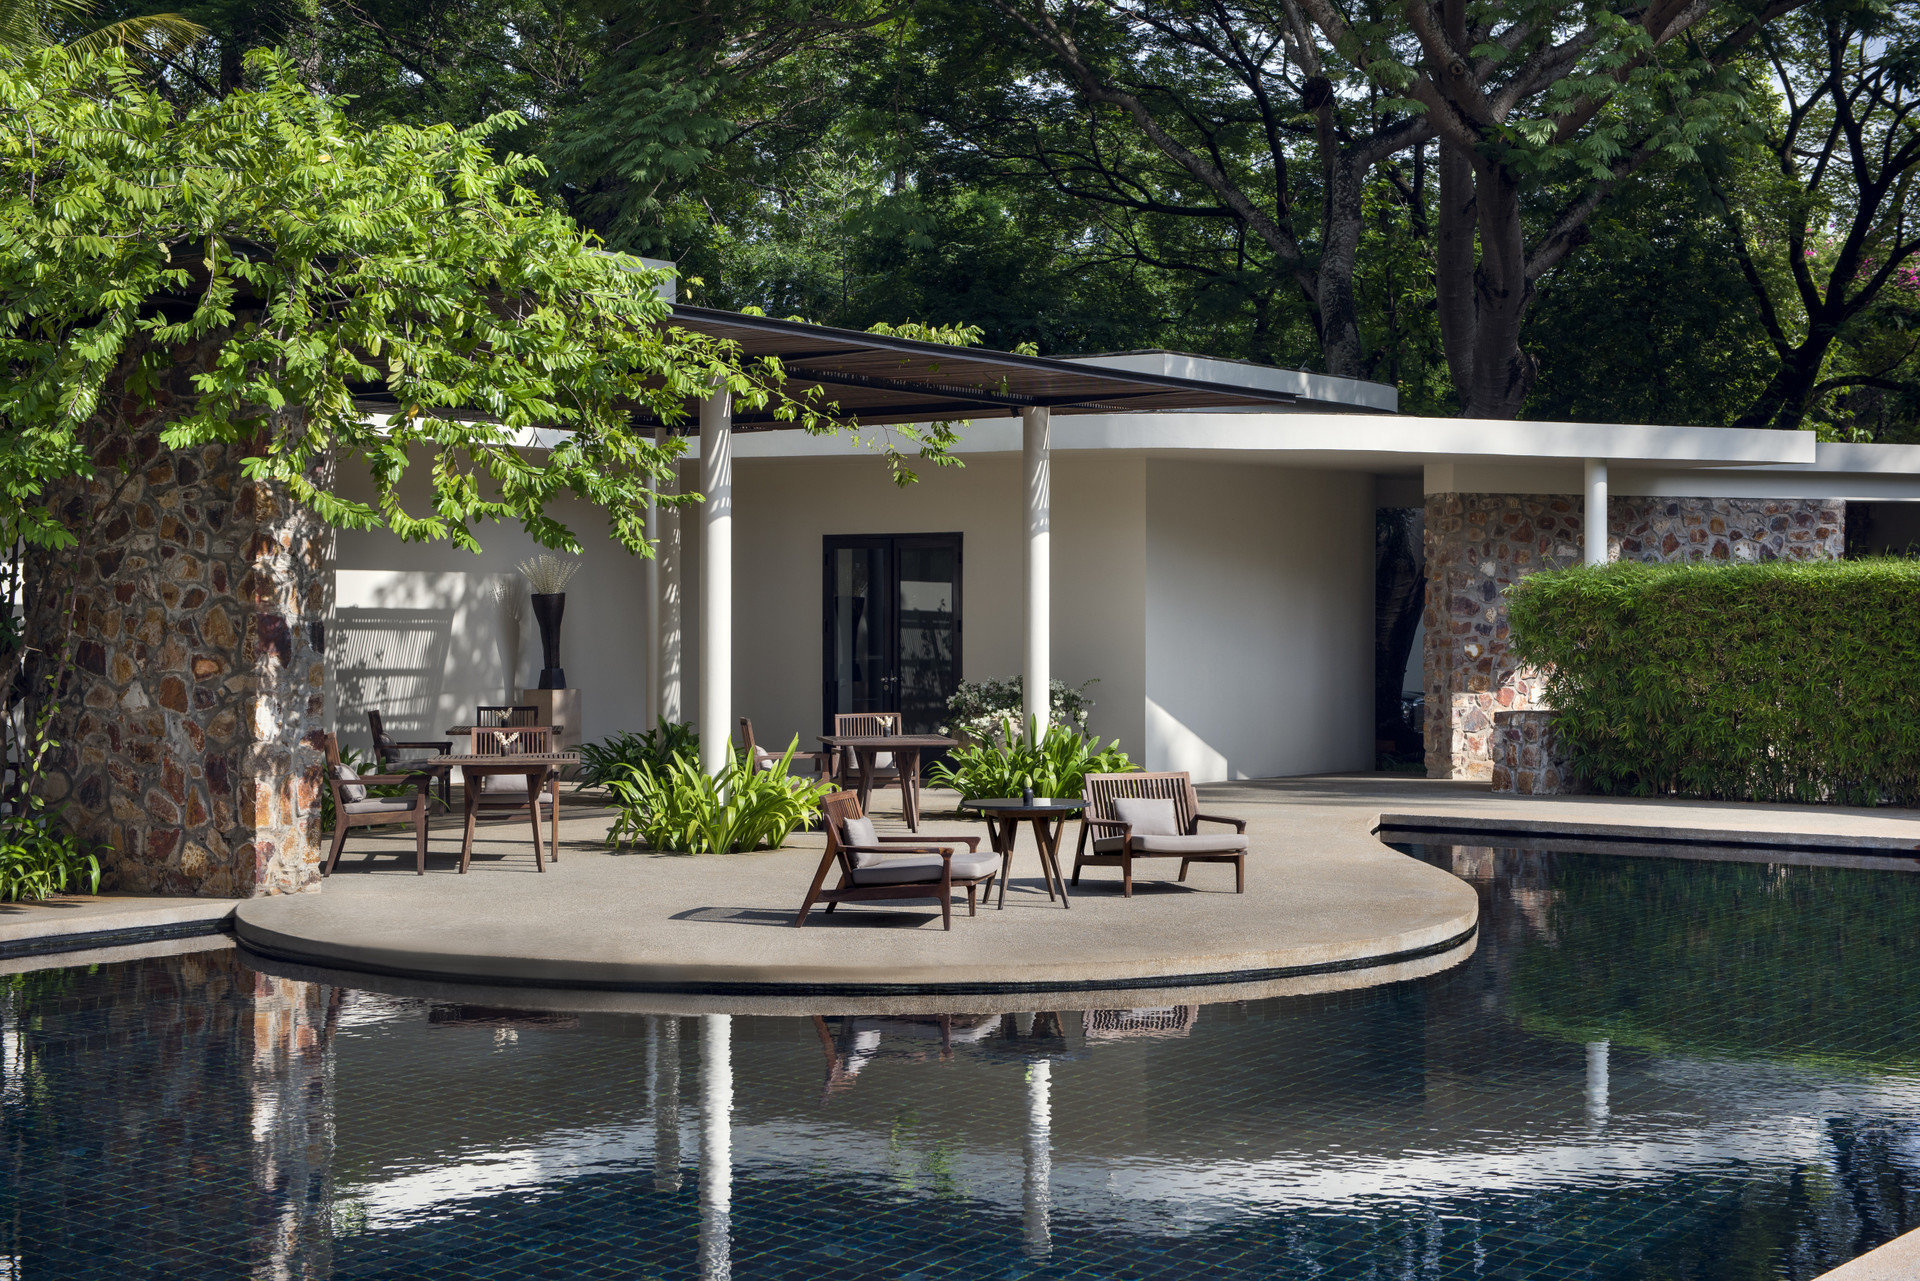 tree property swimming pool house backyard home Courtyard reflecting pool Villa outdoor structure yard Garden landscape architect cottage condominium mansion day